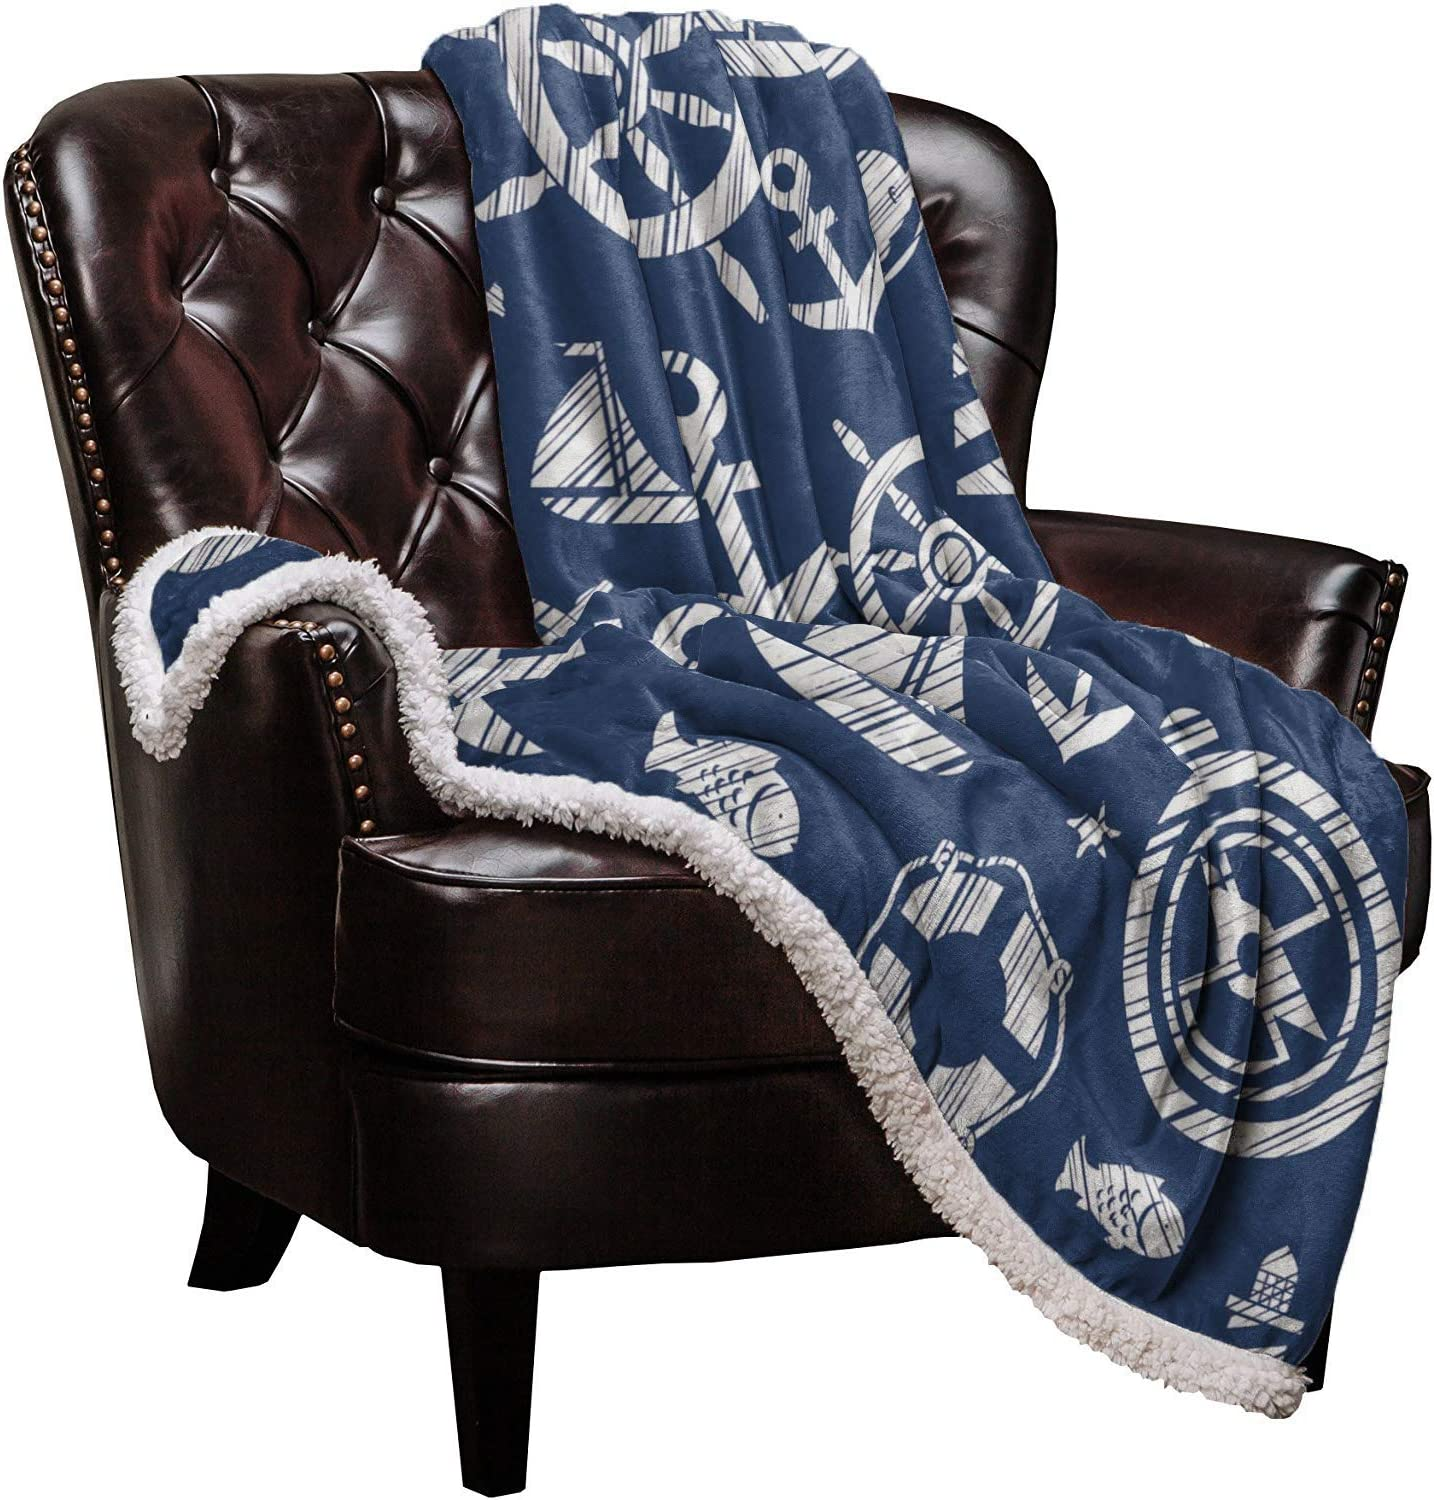 Sherpa Fleece New products world's highest Max 80% OFF quality popular Throw Blanket Ship Lighthouse Lifebuoy Blue and on